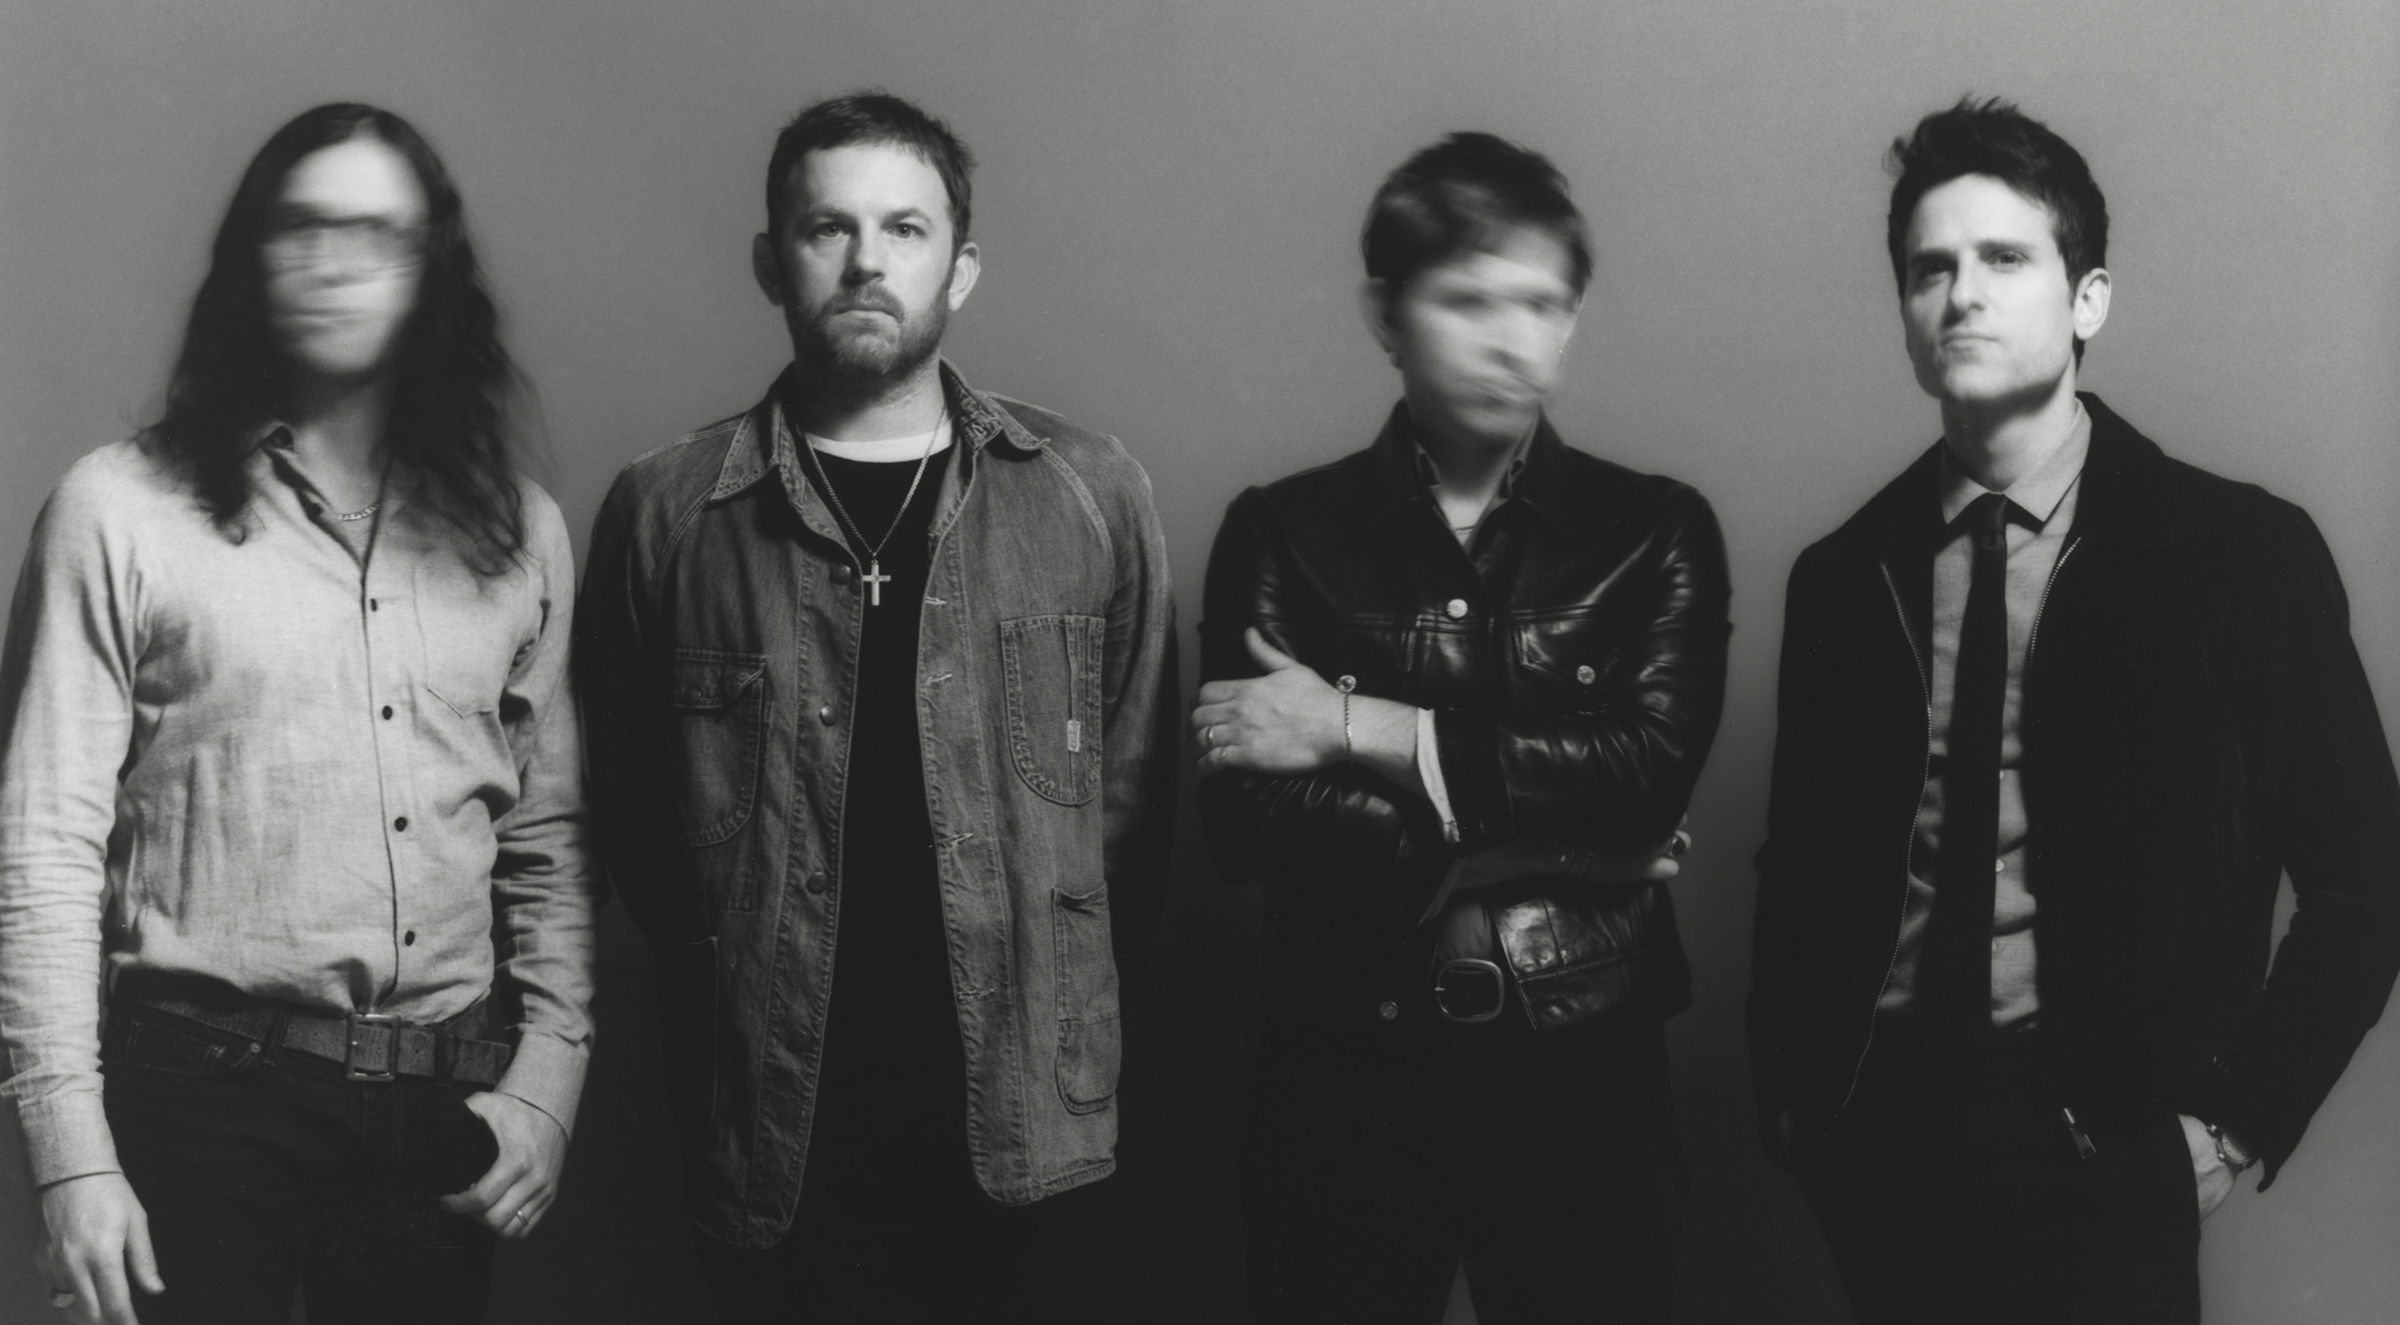 KINGS OF LEON announce eighth studio album 'When You See Yourself' - Out 5th March